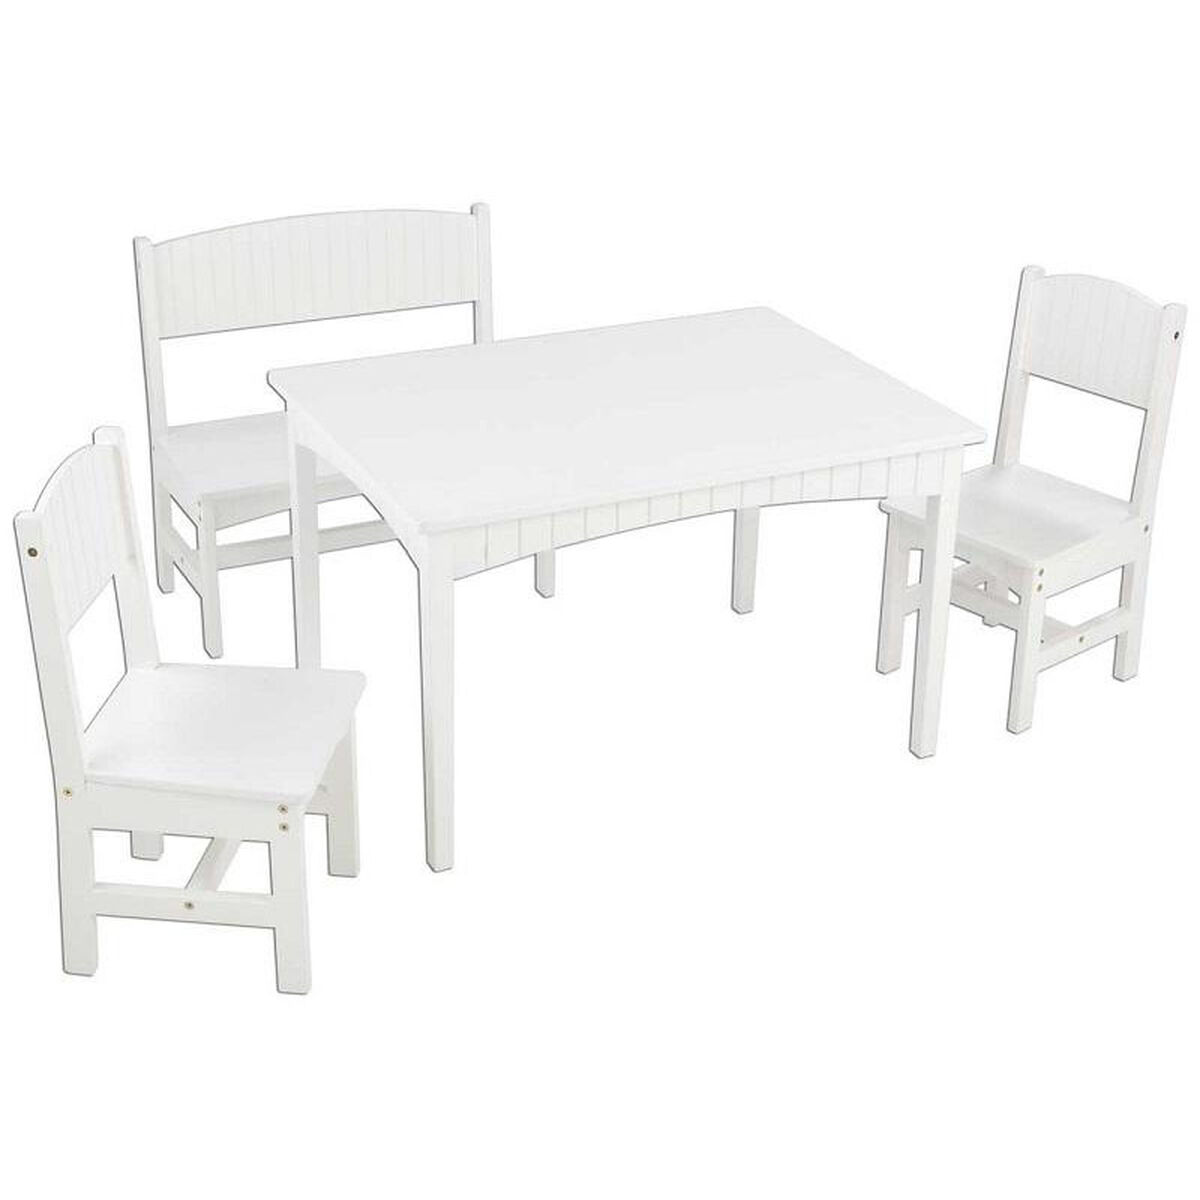 Our Nantucket Four Piece Kids Wooden Square Table With One Bench And Two Chairs White